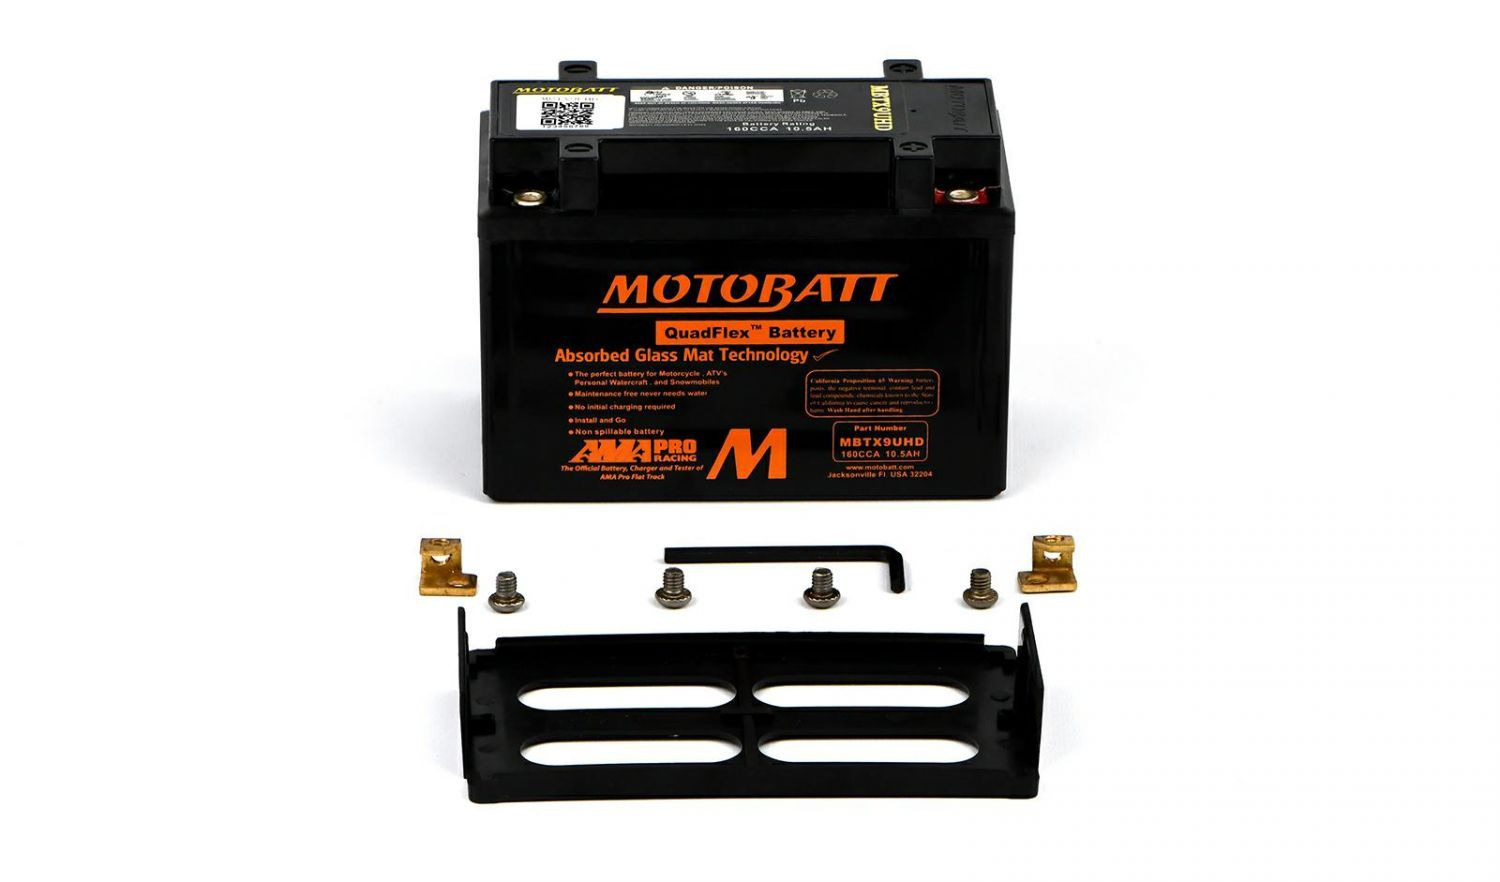 Motobatt Batteries - 501095MB image